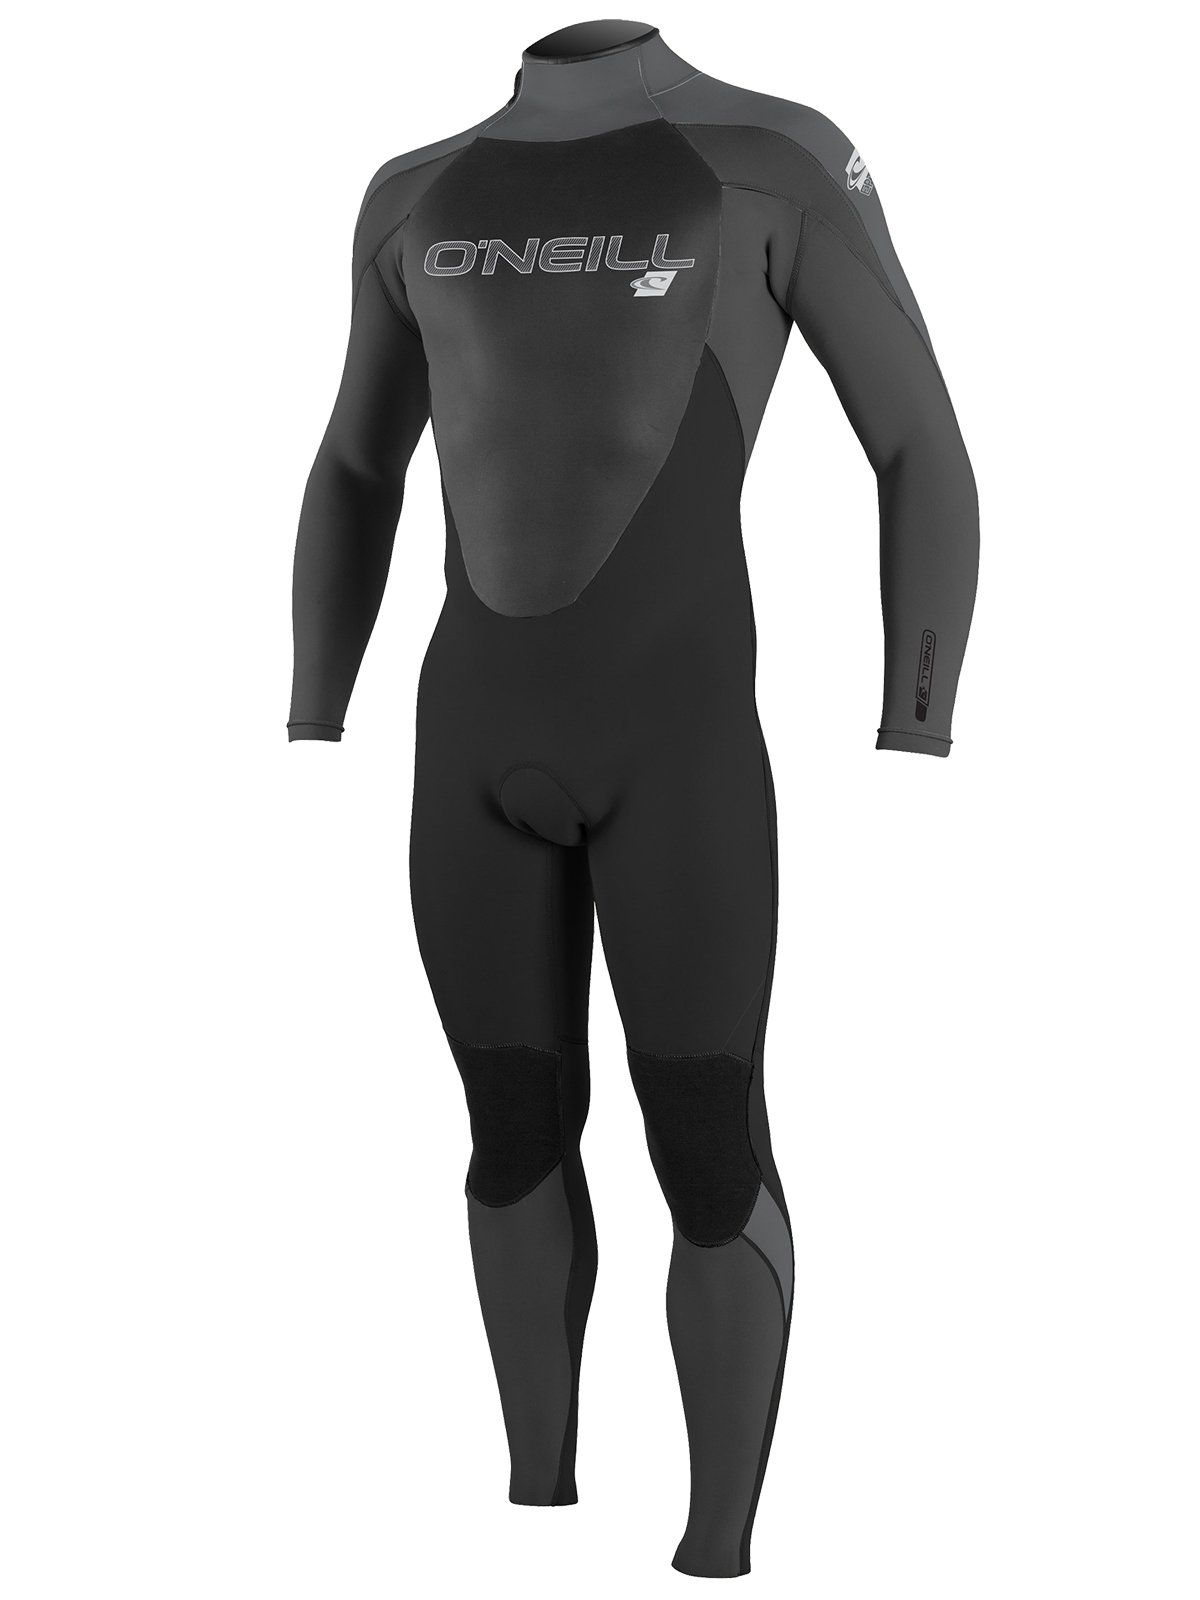 O'Neill Men's Epic 4/3mm Back Zip Full Wetsuit, Black/Oil/Smoke, Small